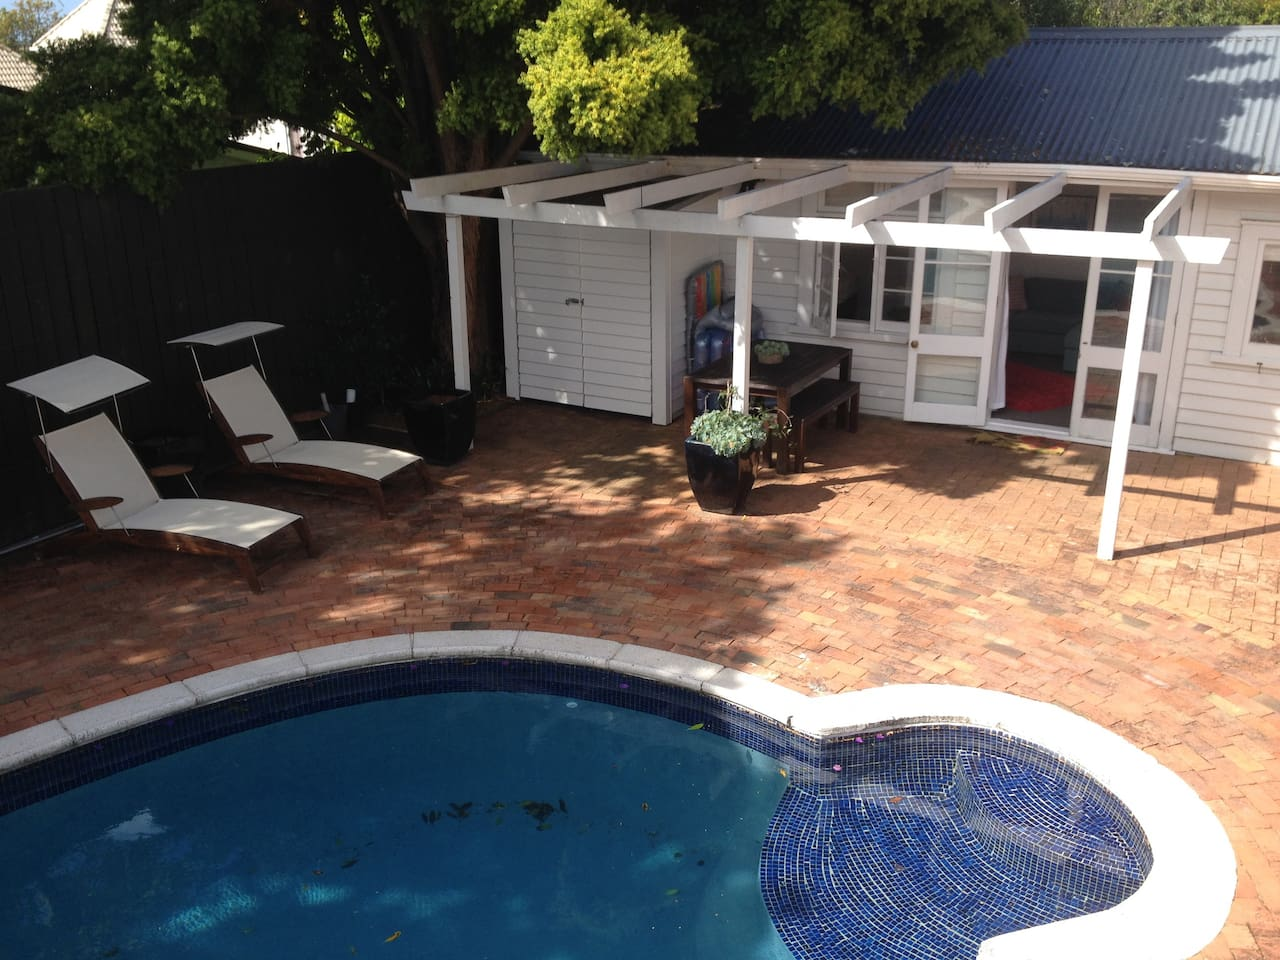 Welcome to our poolside cottage!